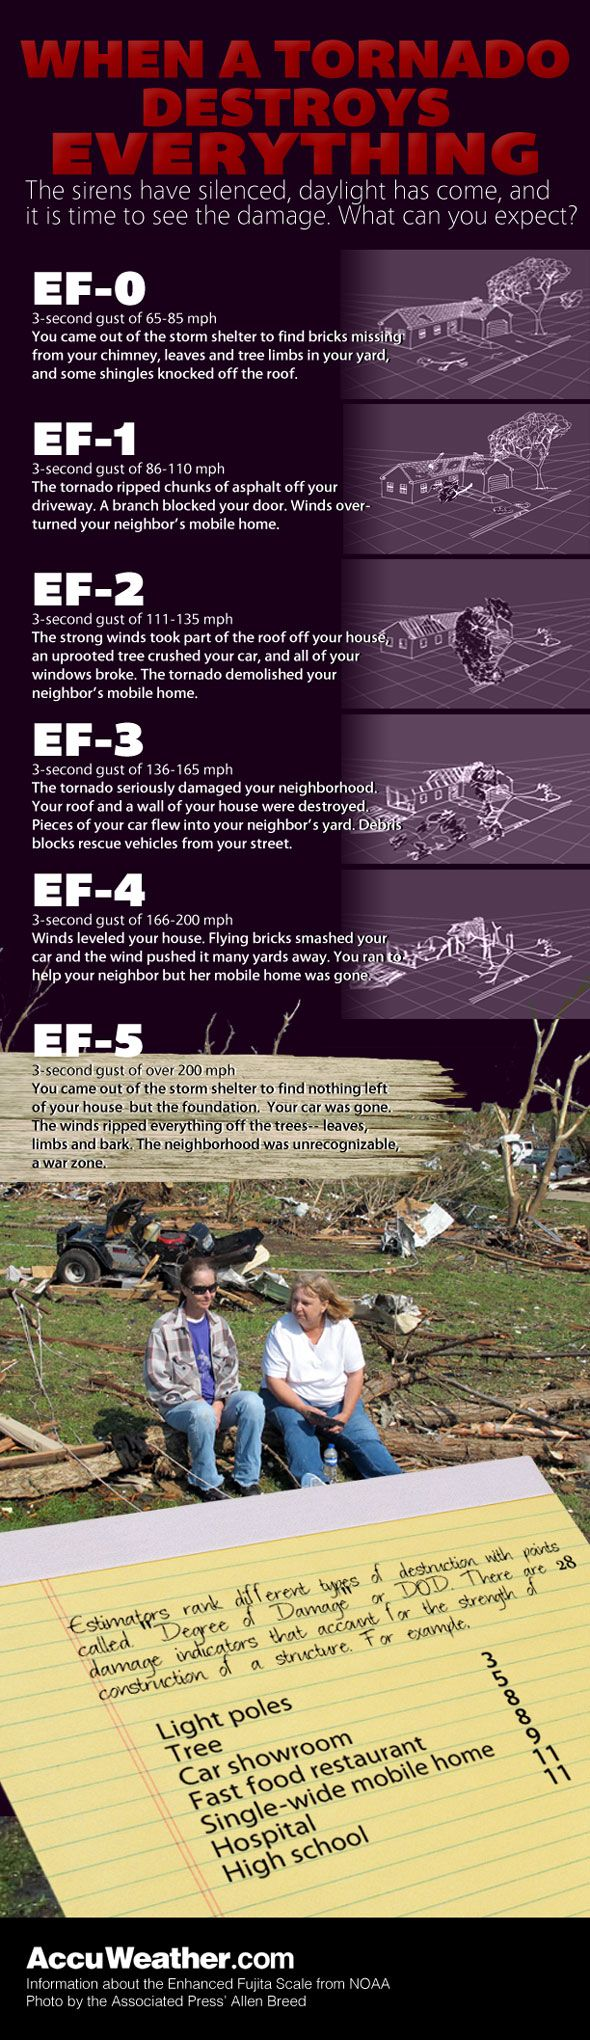 Tornado wind speed damage expectancy chart